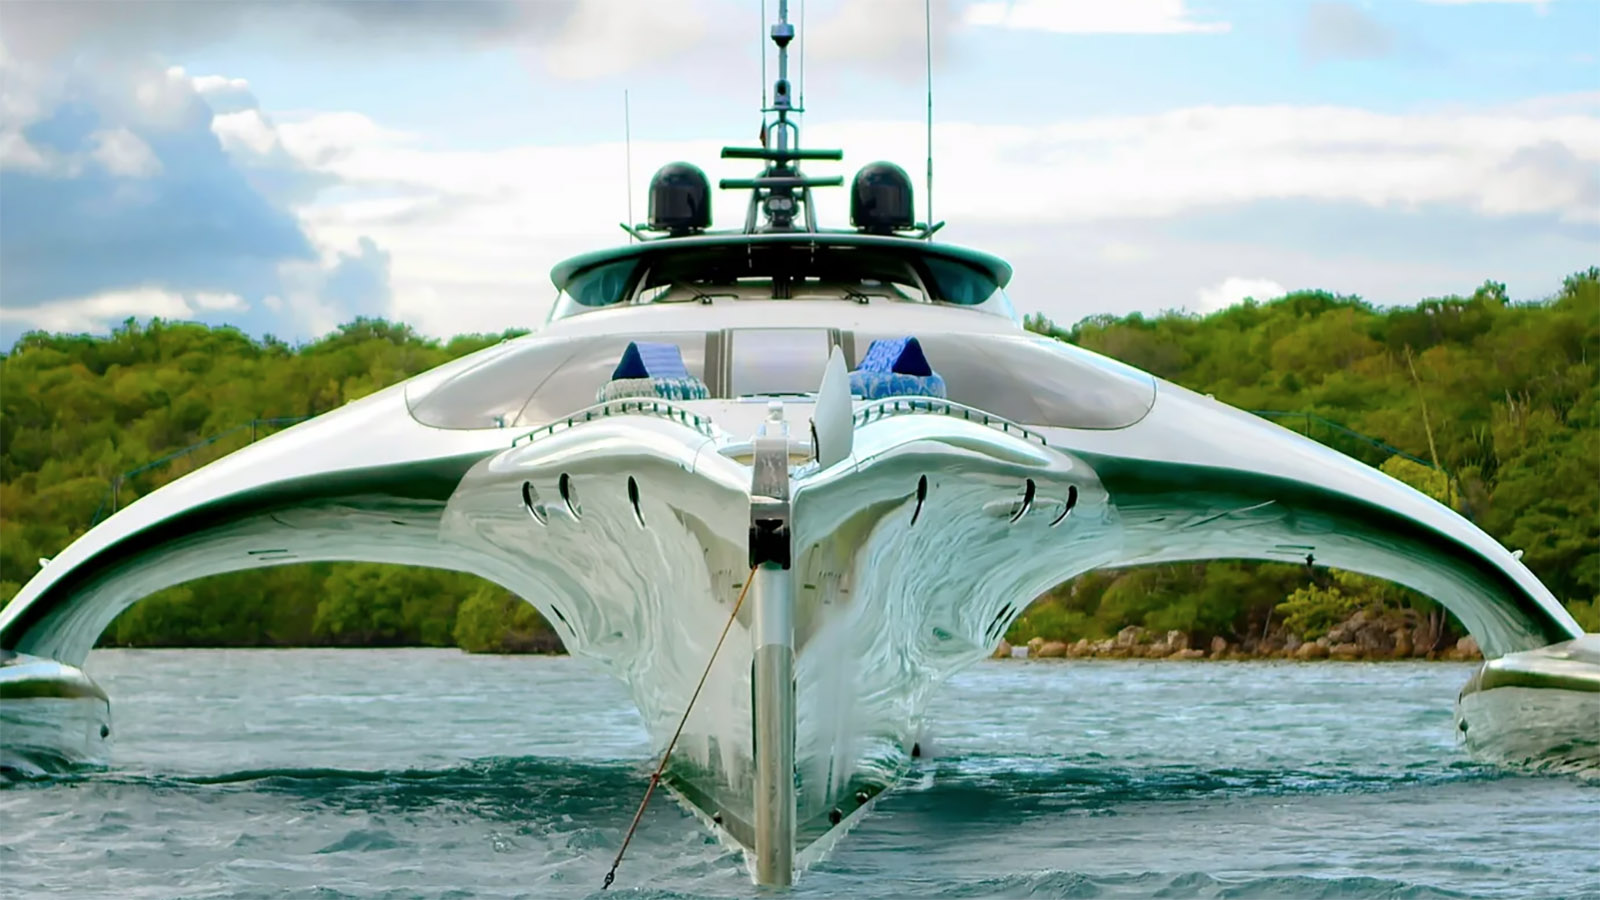 ipad-controlled yacht adastra goes up for sale for $15